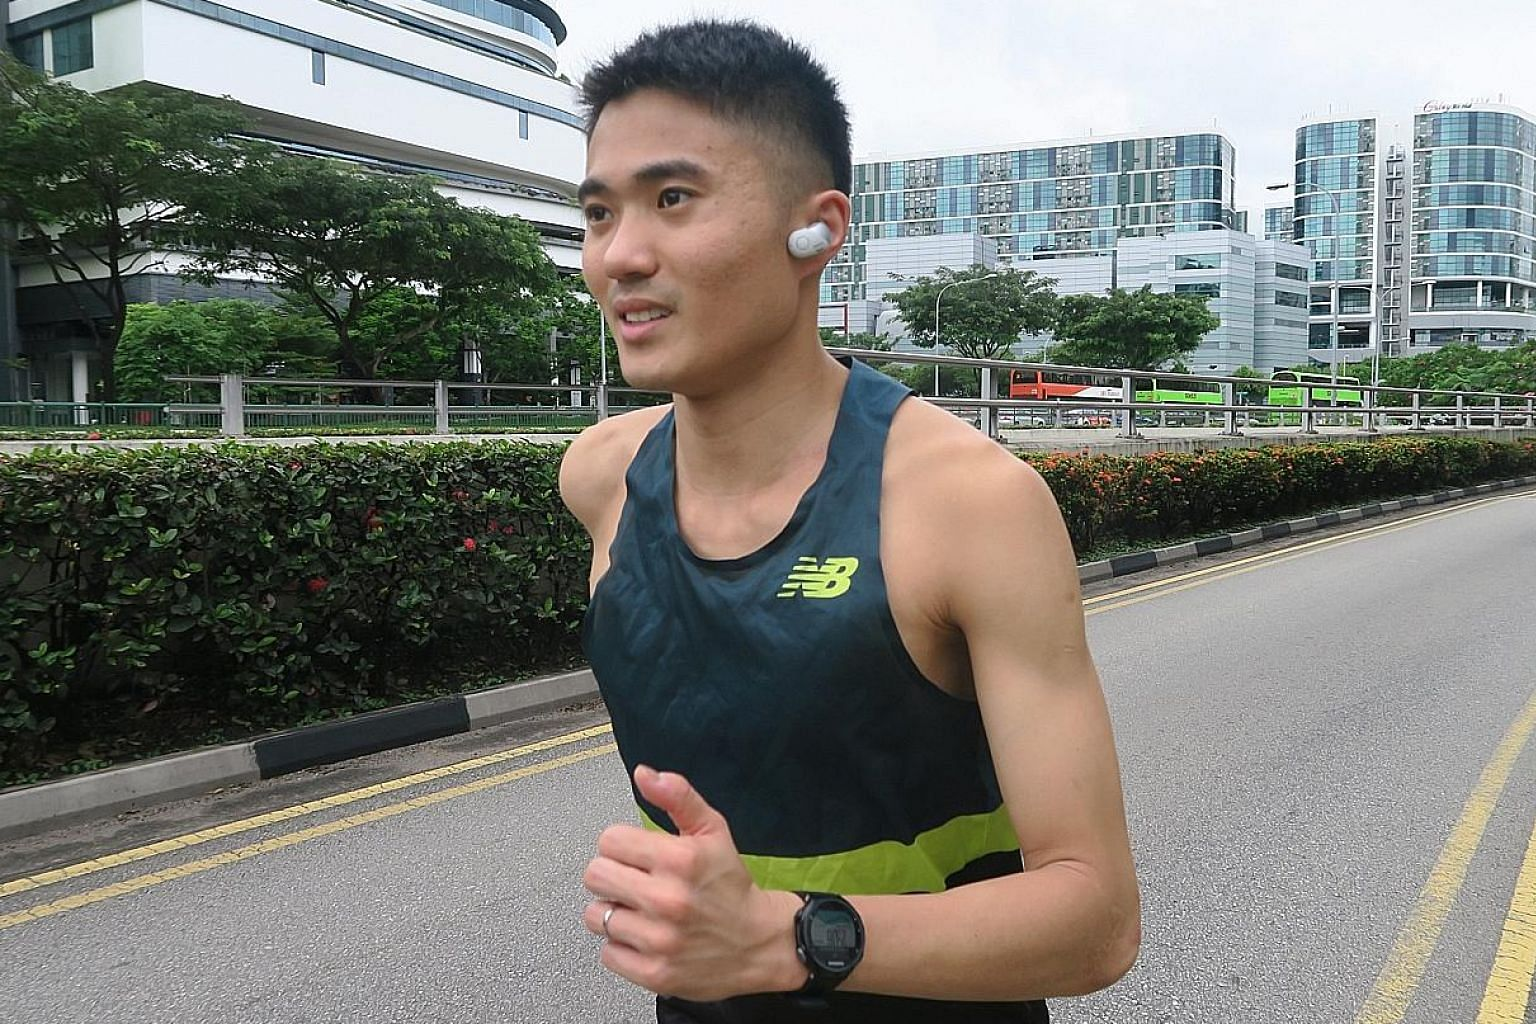 For Mok Ying Ren, who run-commutes along noisy high-traffic routes, listening to music and audiobooks on his noise-cancelling headphones helps him to focus and enjoy the run.